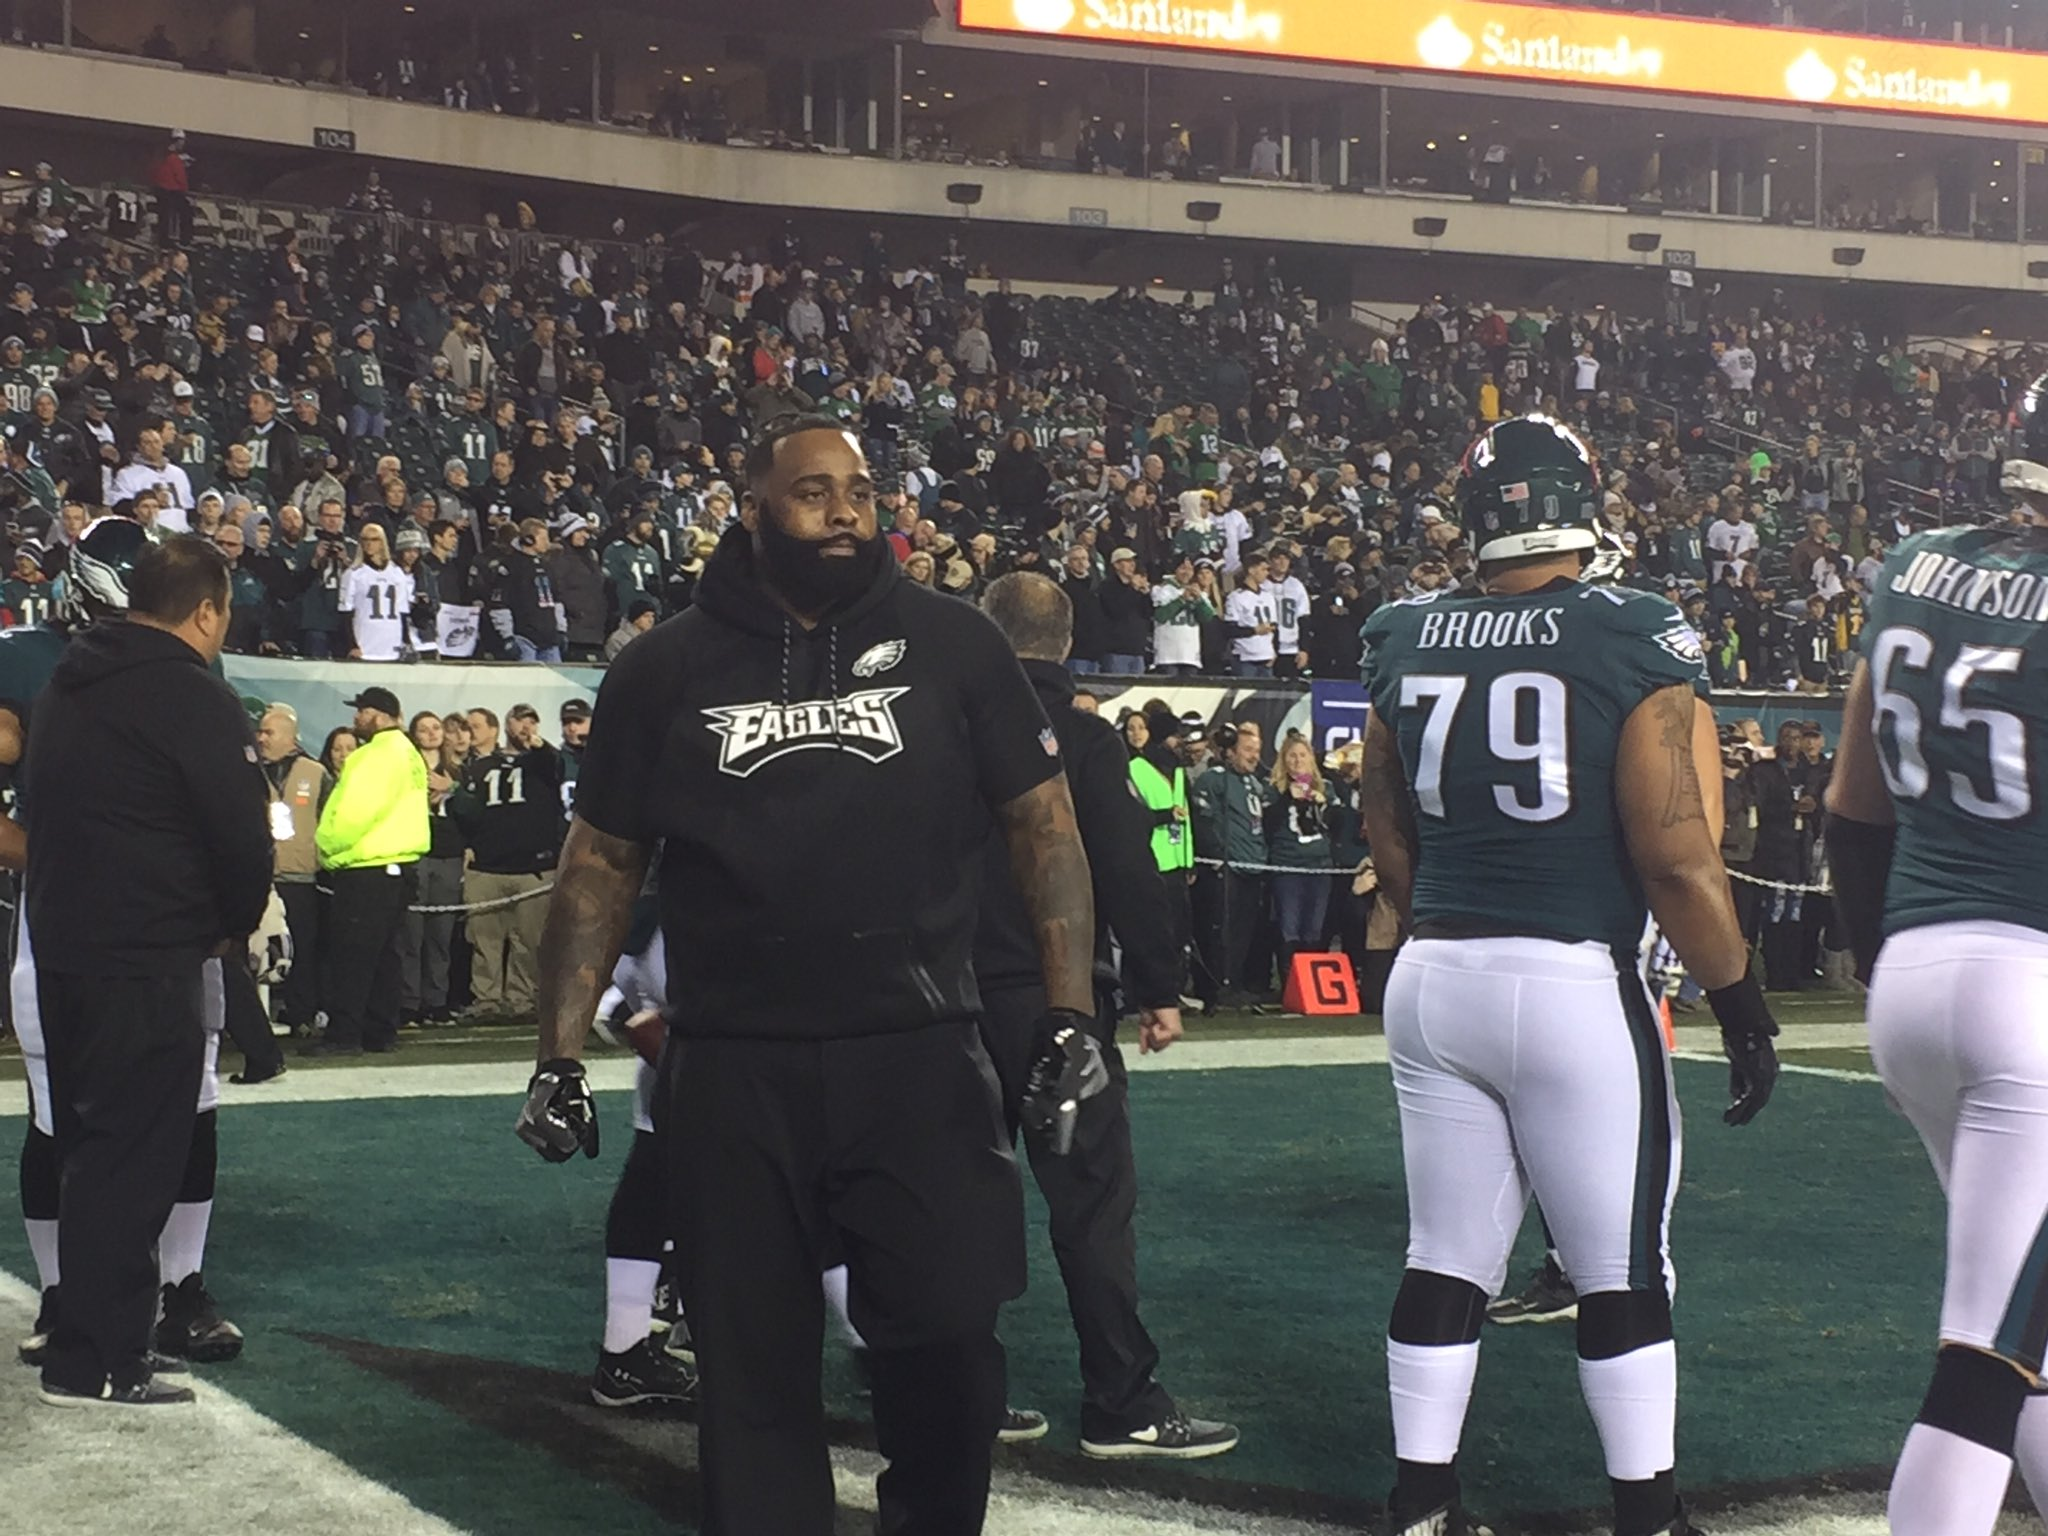 Jason Peters was on the field during warmups with the other #Eagles OL, helping get them ready. https://t.co/t5ZZzfcTSy